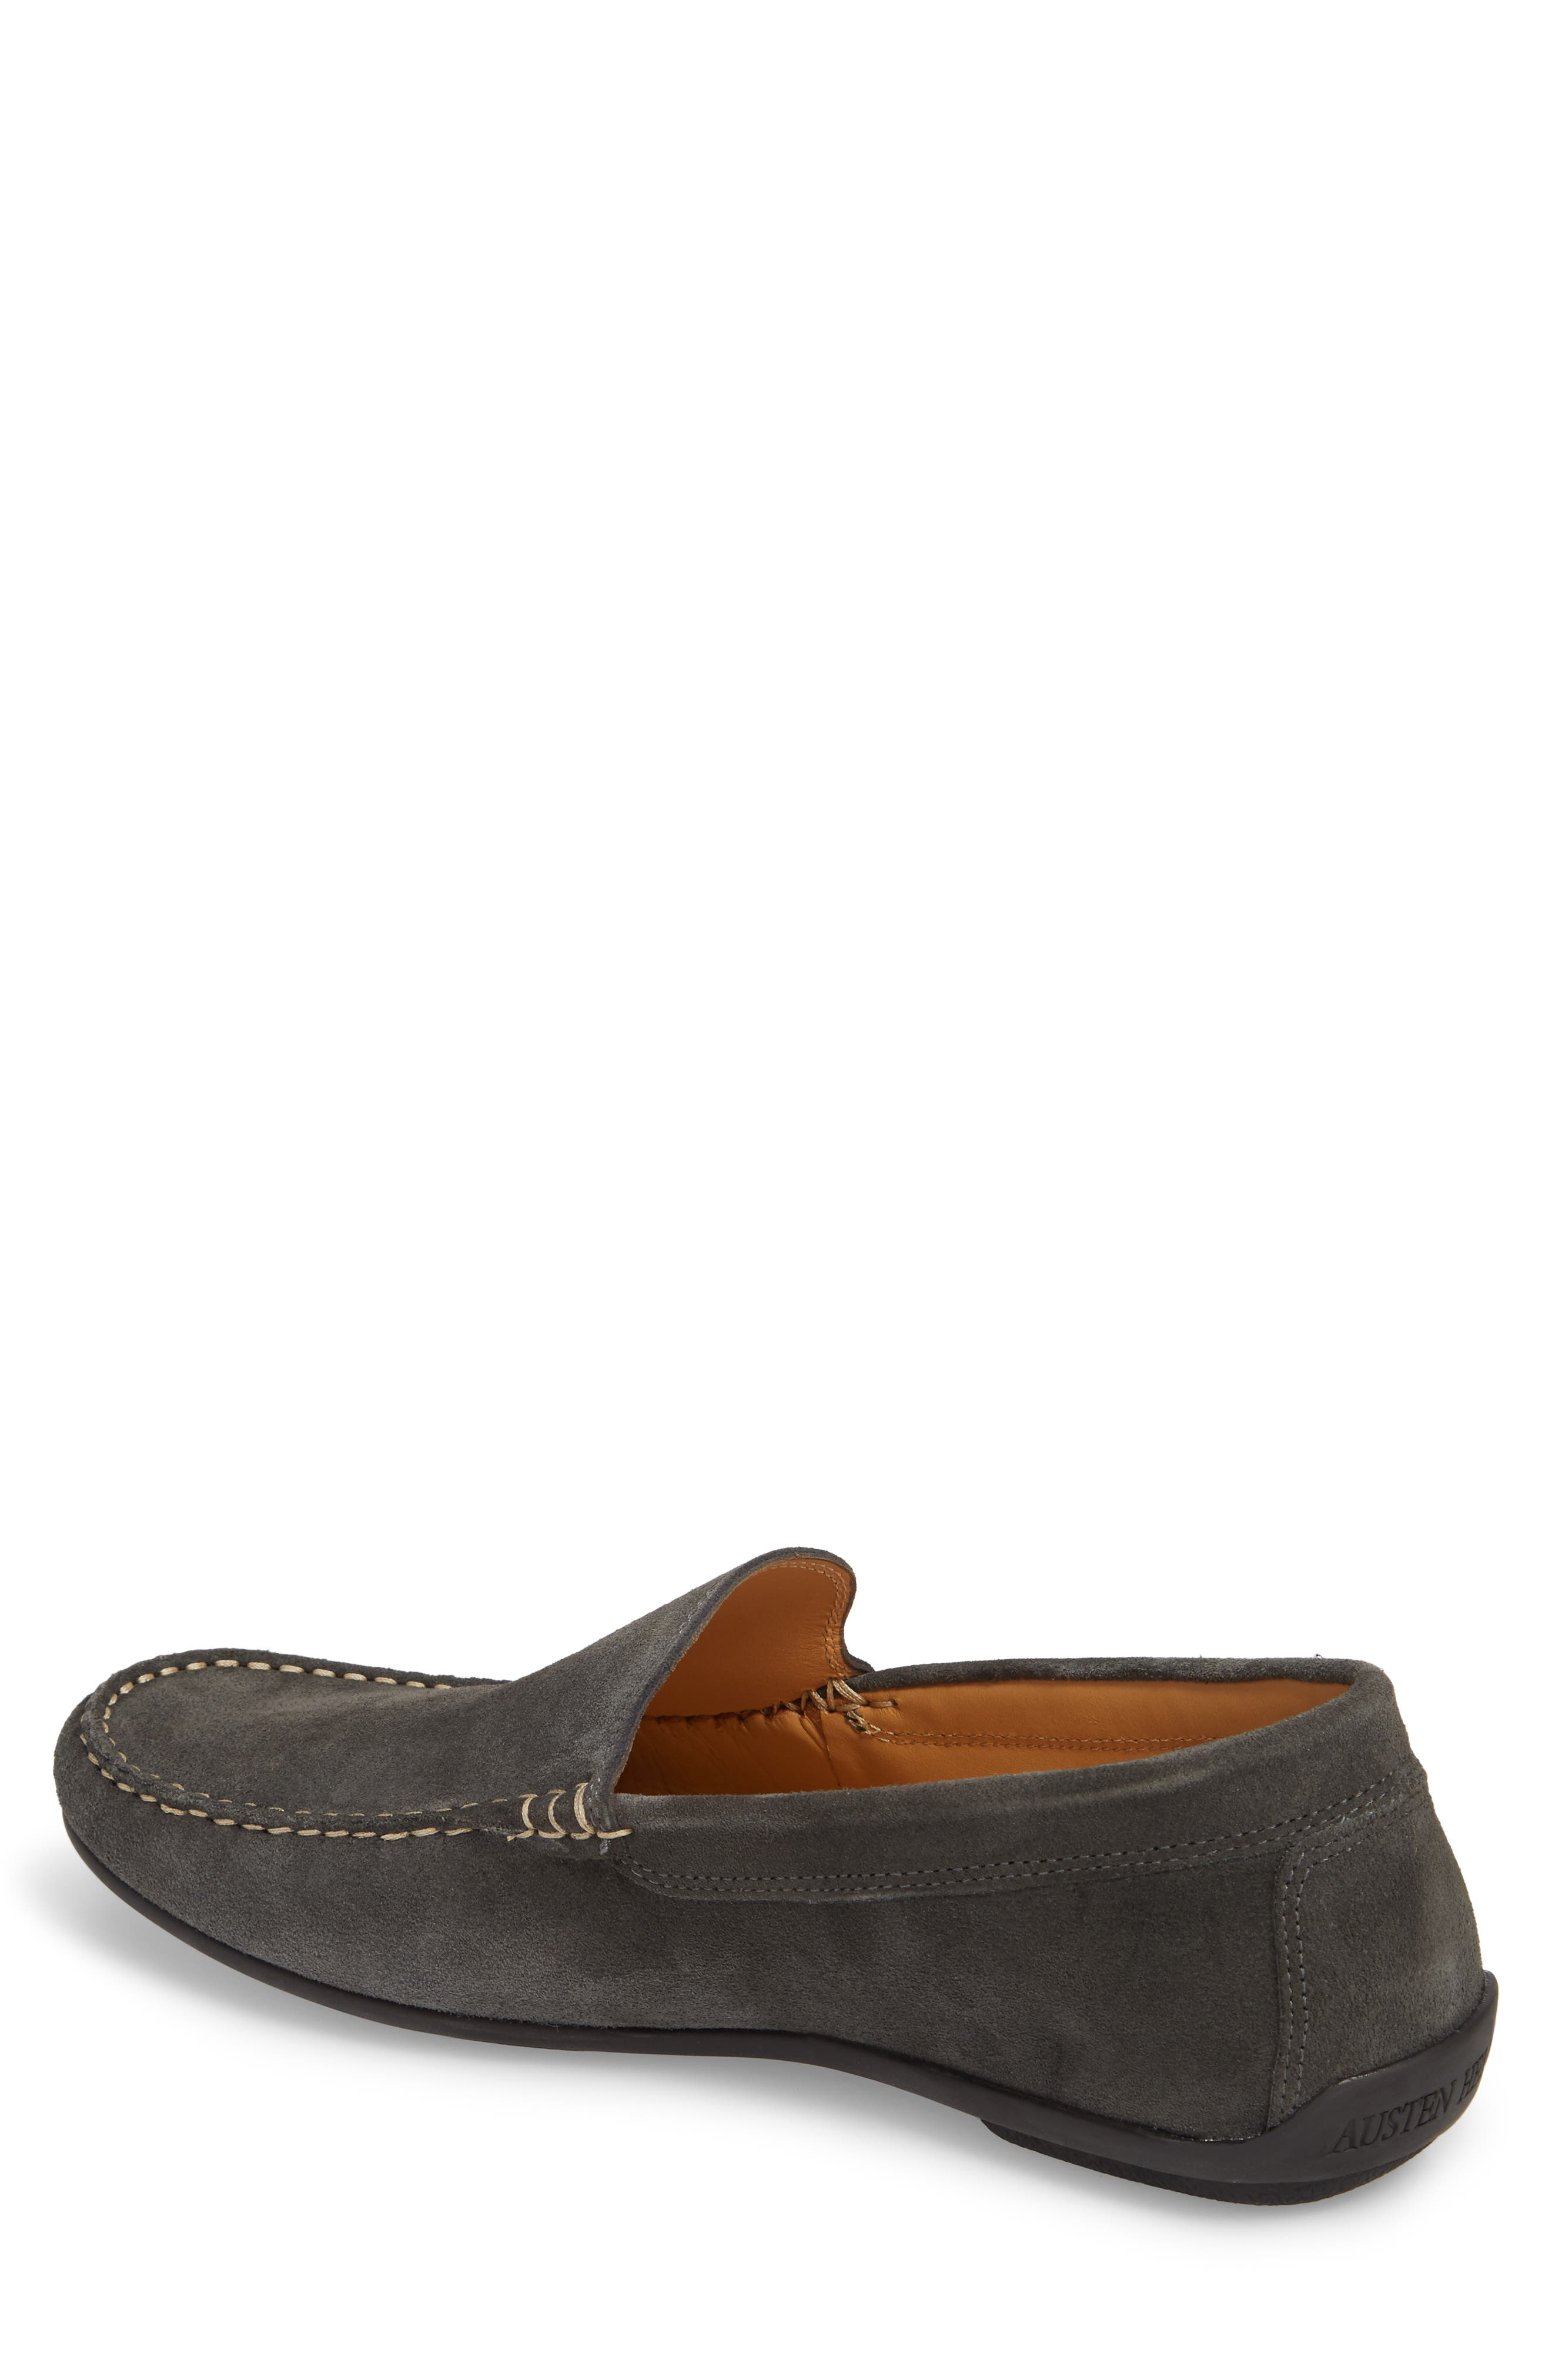 Greyhounds Loafer,                             Alternate thumbnail 2, color,                             Grey Suede